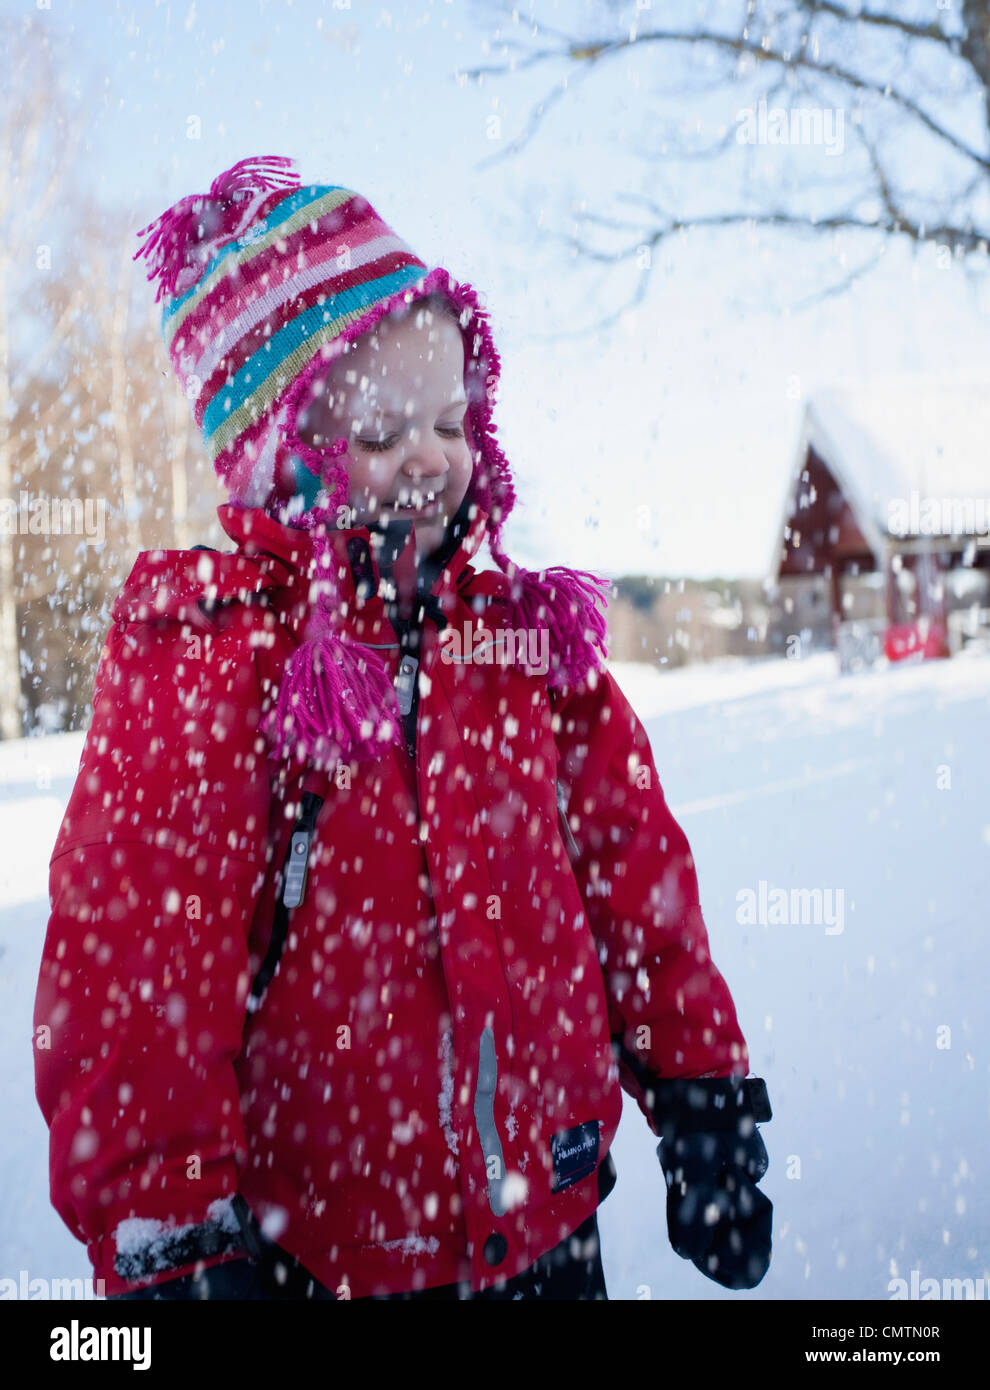 Girl (6-7) standing in snow fall - Stock Image